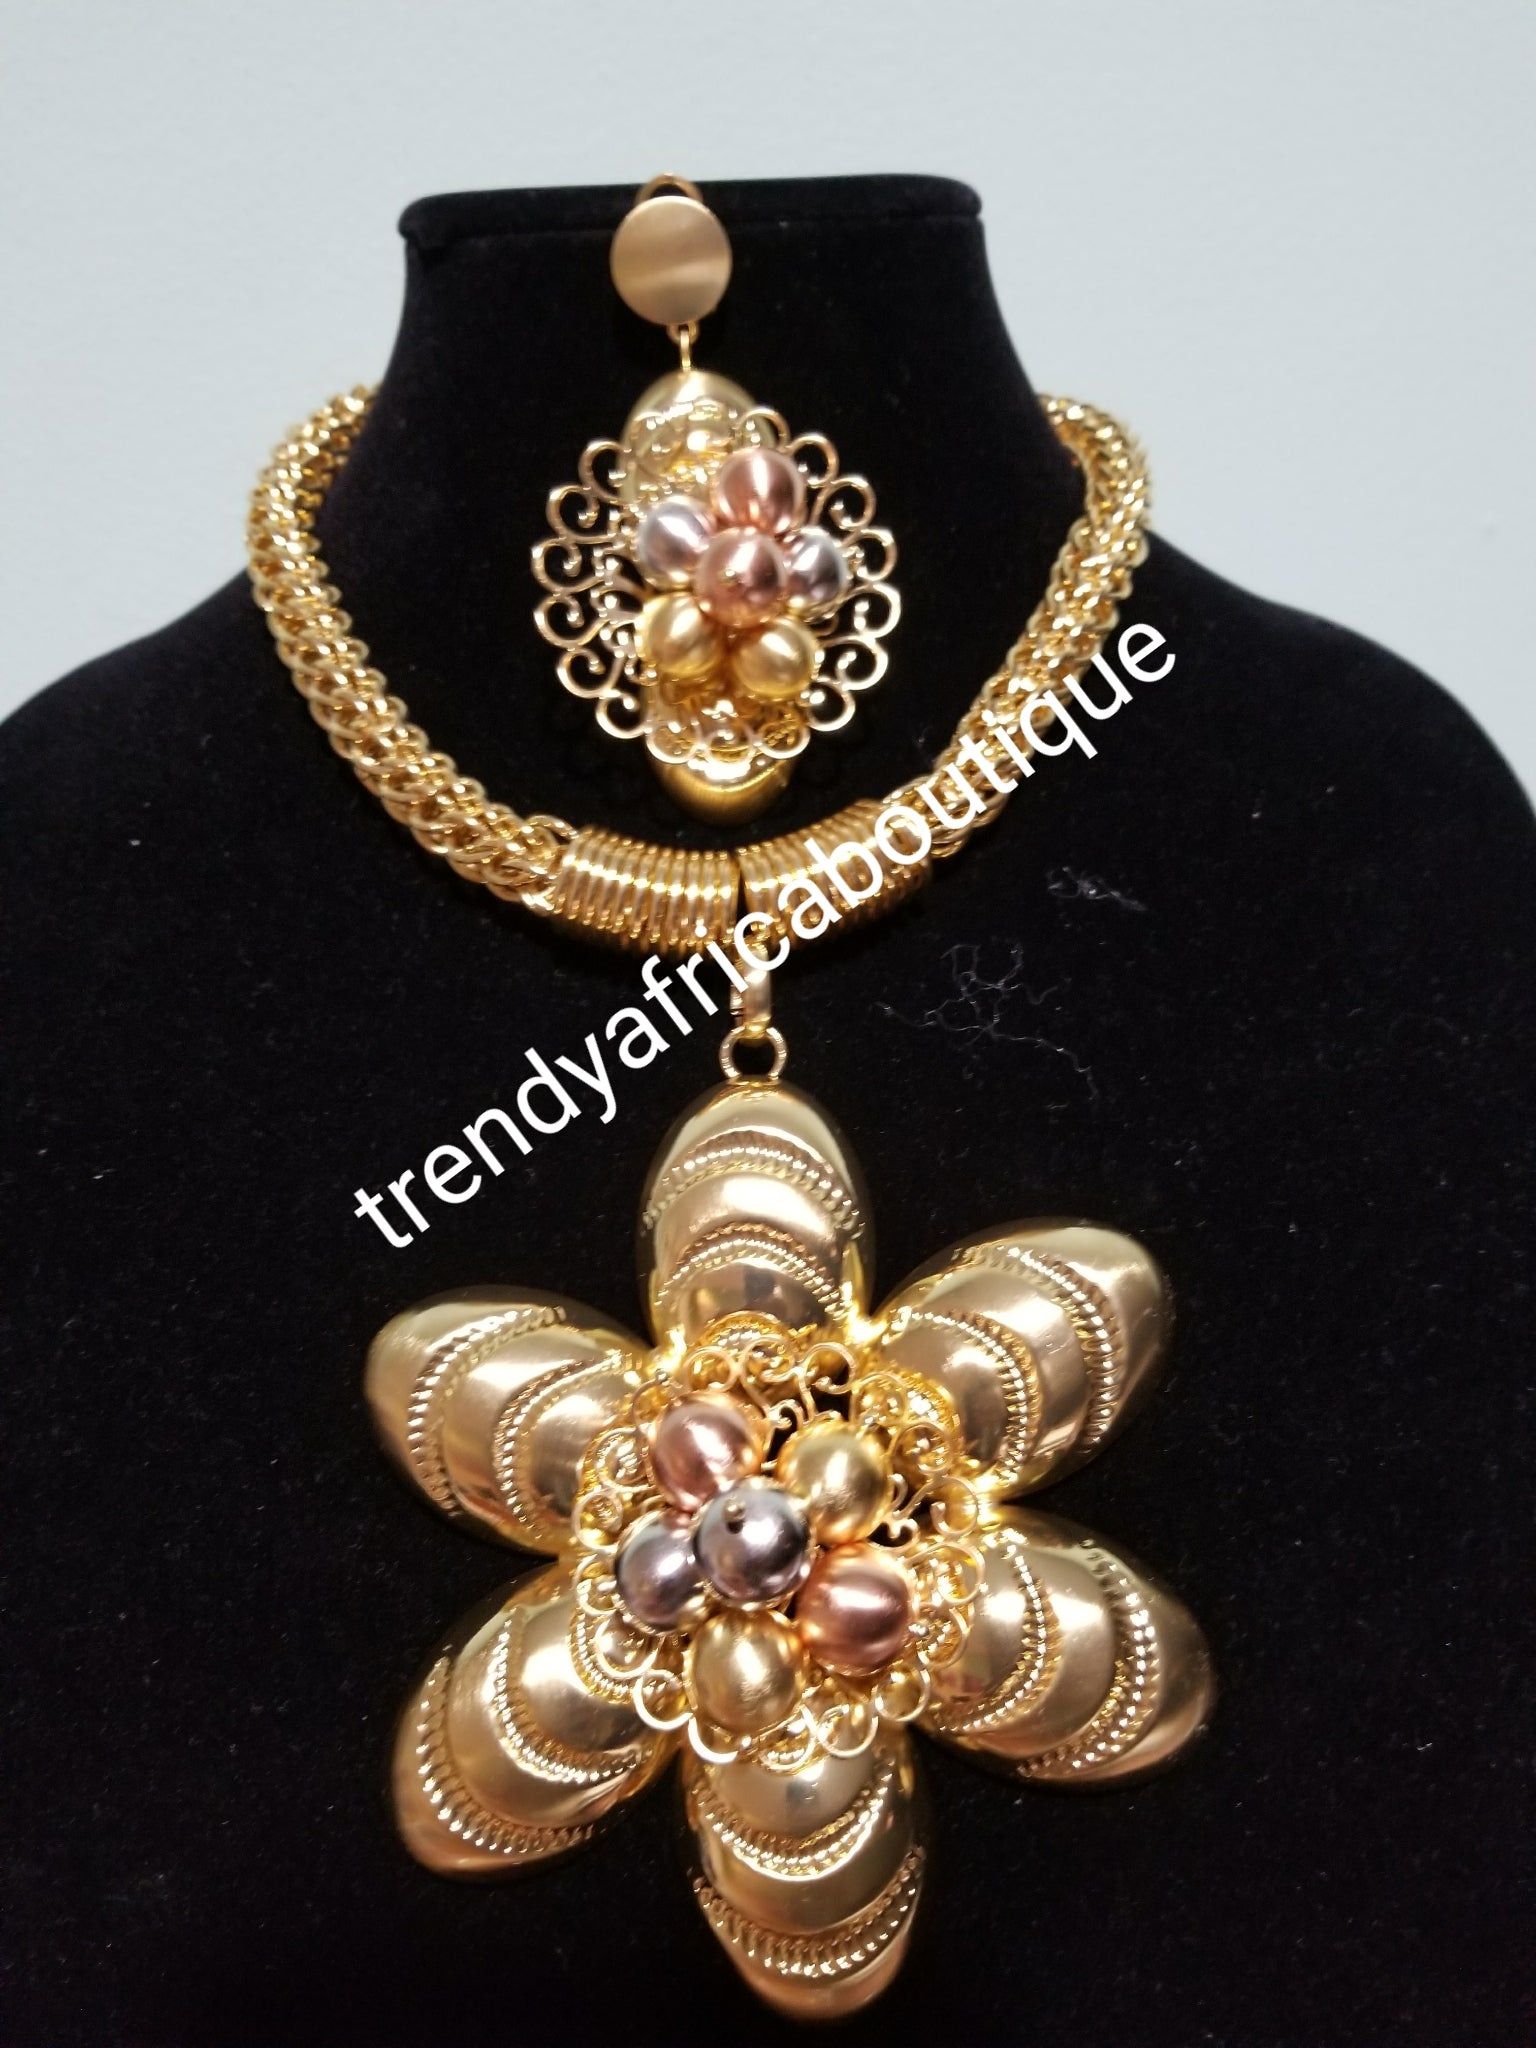 Latest 18k Gold plated Dubai costume jewelries set. High quality plating, hypoallergenic necklace and earrimgs set. Sold as a set